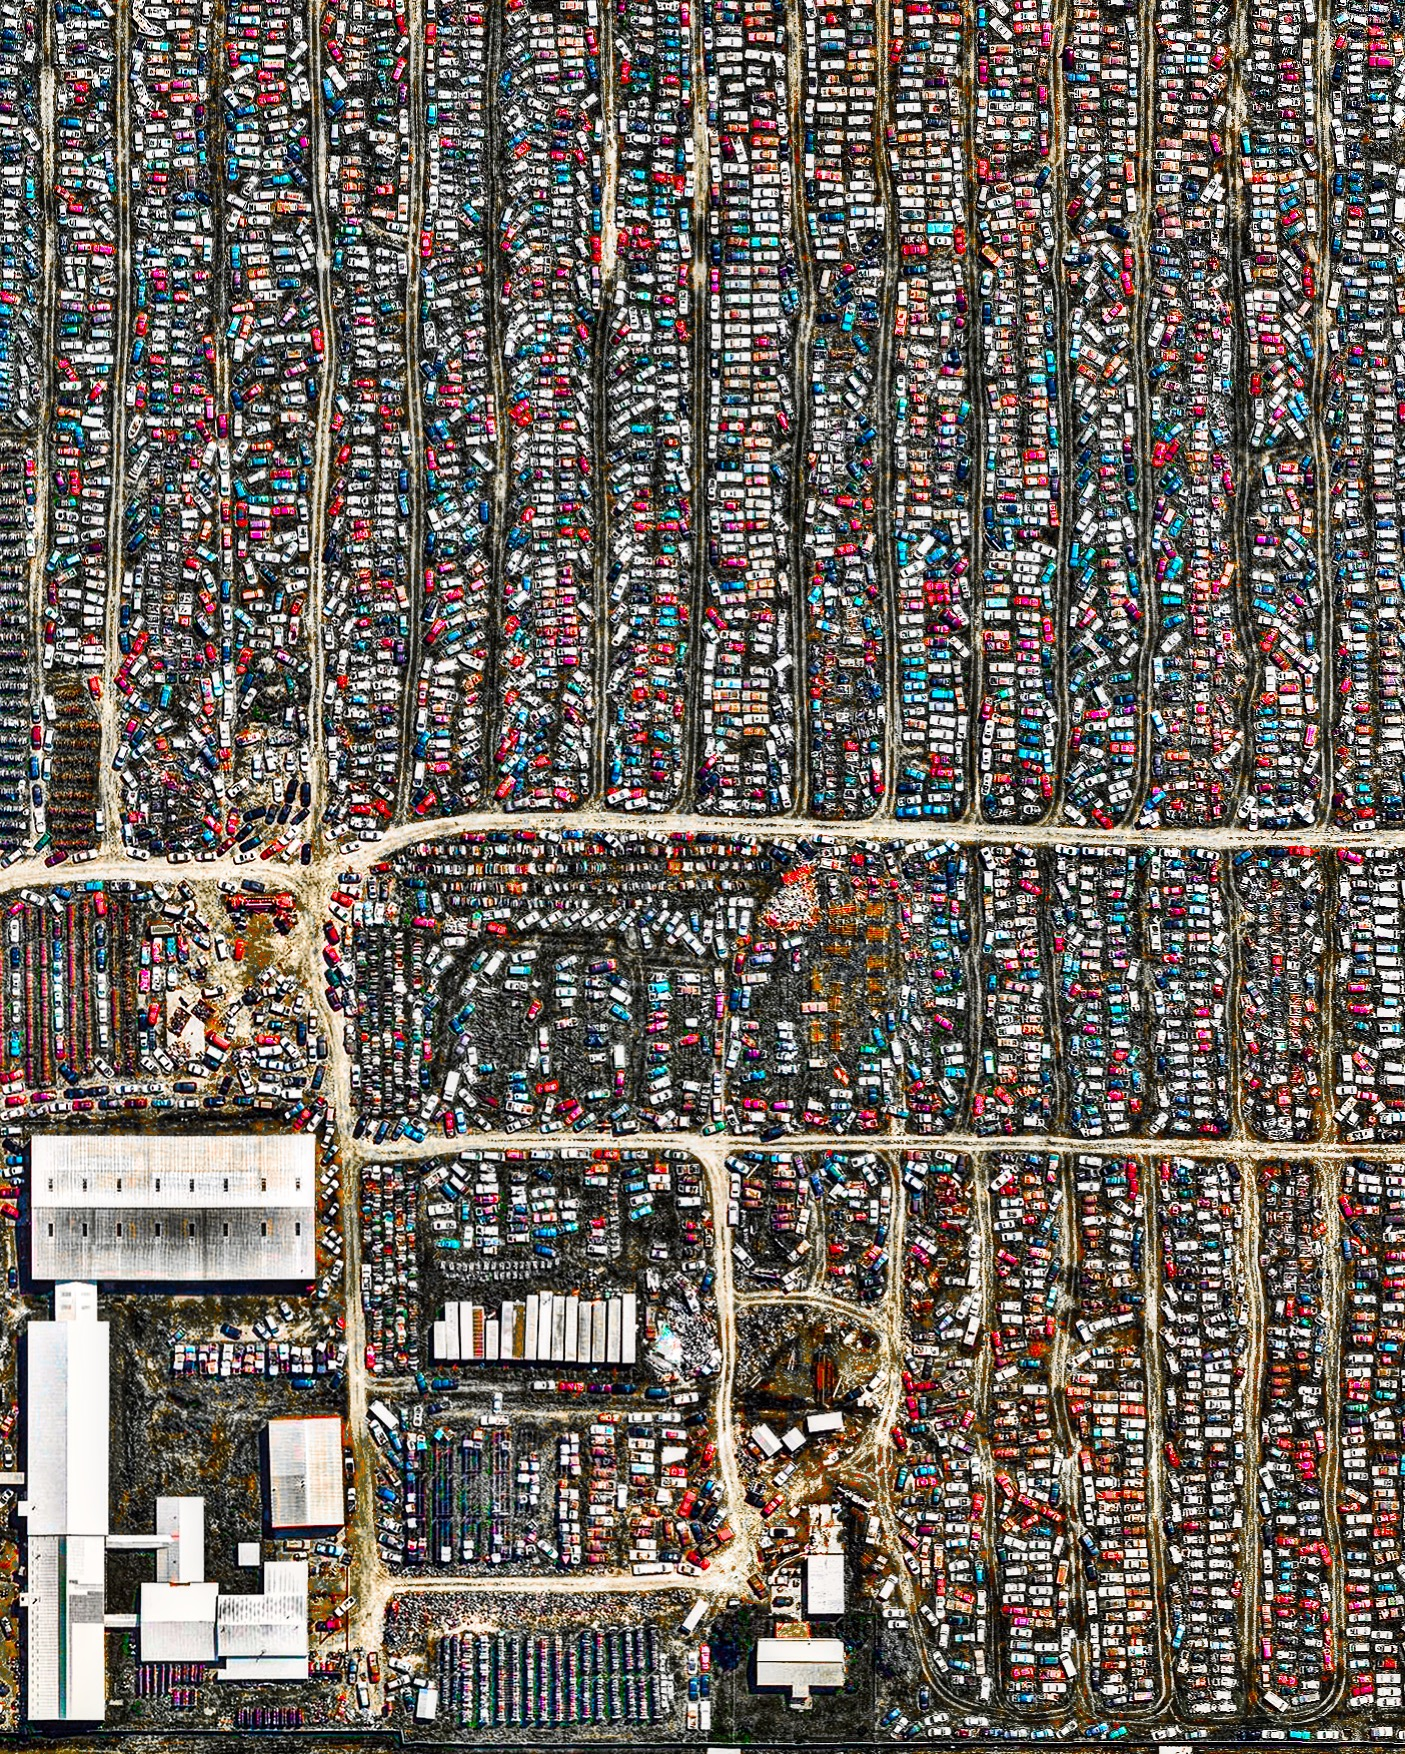 Thousands of vehicles are stored at a salvage yard in Rapid City, South Dakota, where they will be scrapped for usable parts and recycled back into raw materials. In the U.S. alone, between 12 and 15 million vehicles reach the end of their lives every year, making them the most-recycled consumer product in the nation. Currently, about 75% of all vehicle materials can be salvaged and recycled.  44.109263, -103.184094  Source imagery: Nearmap